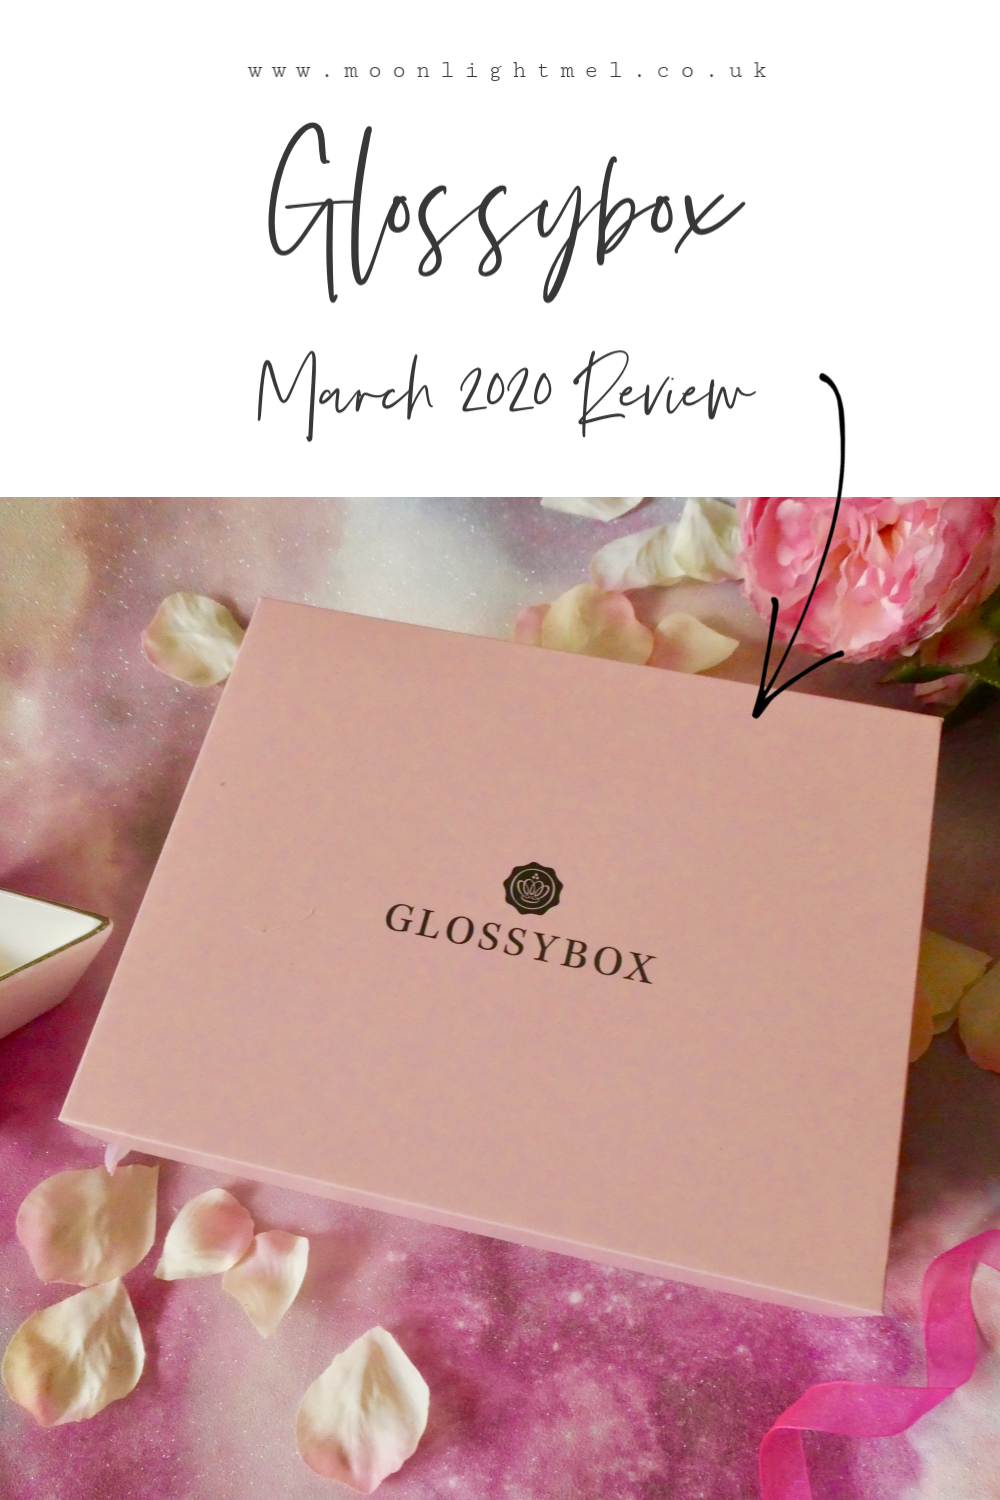 Glossybox March 2020 'All eyes on me' | Unboxing & Review